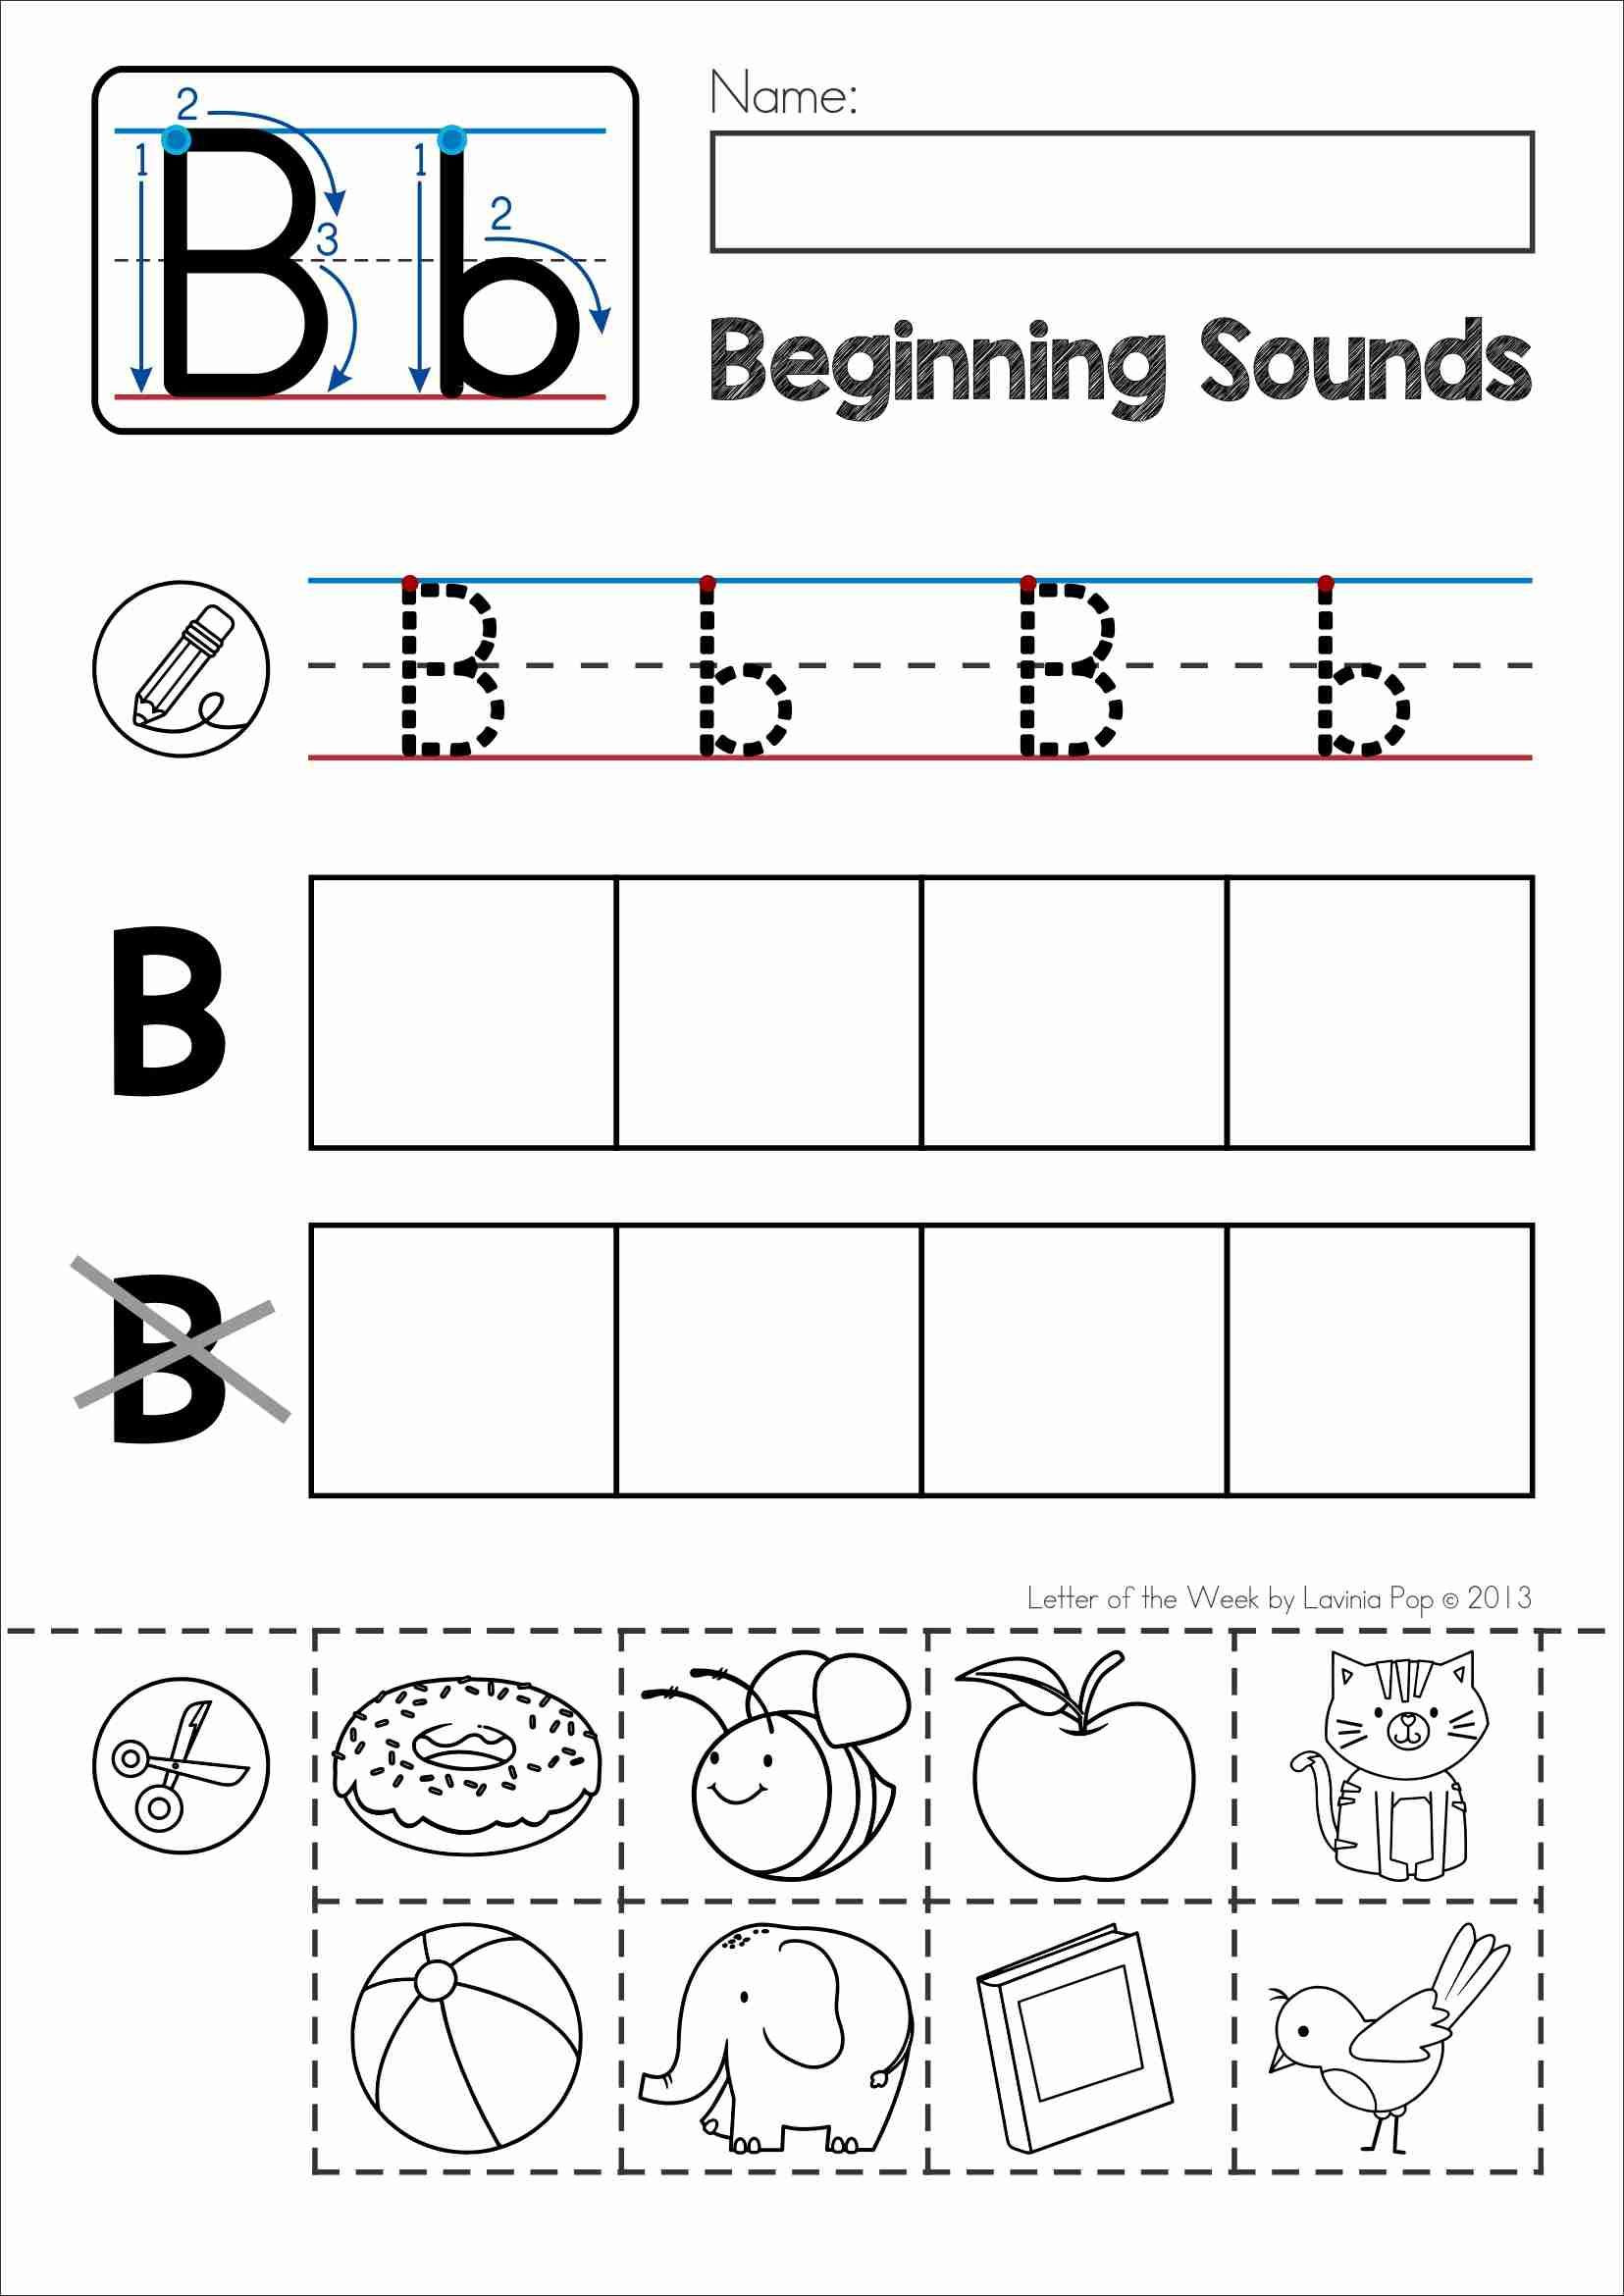 FREE Back to School Alphabet Phonics Letter of the Week B